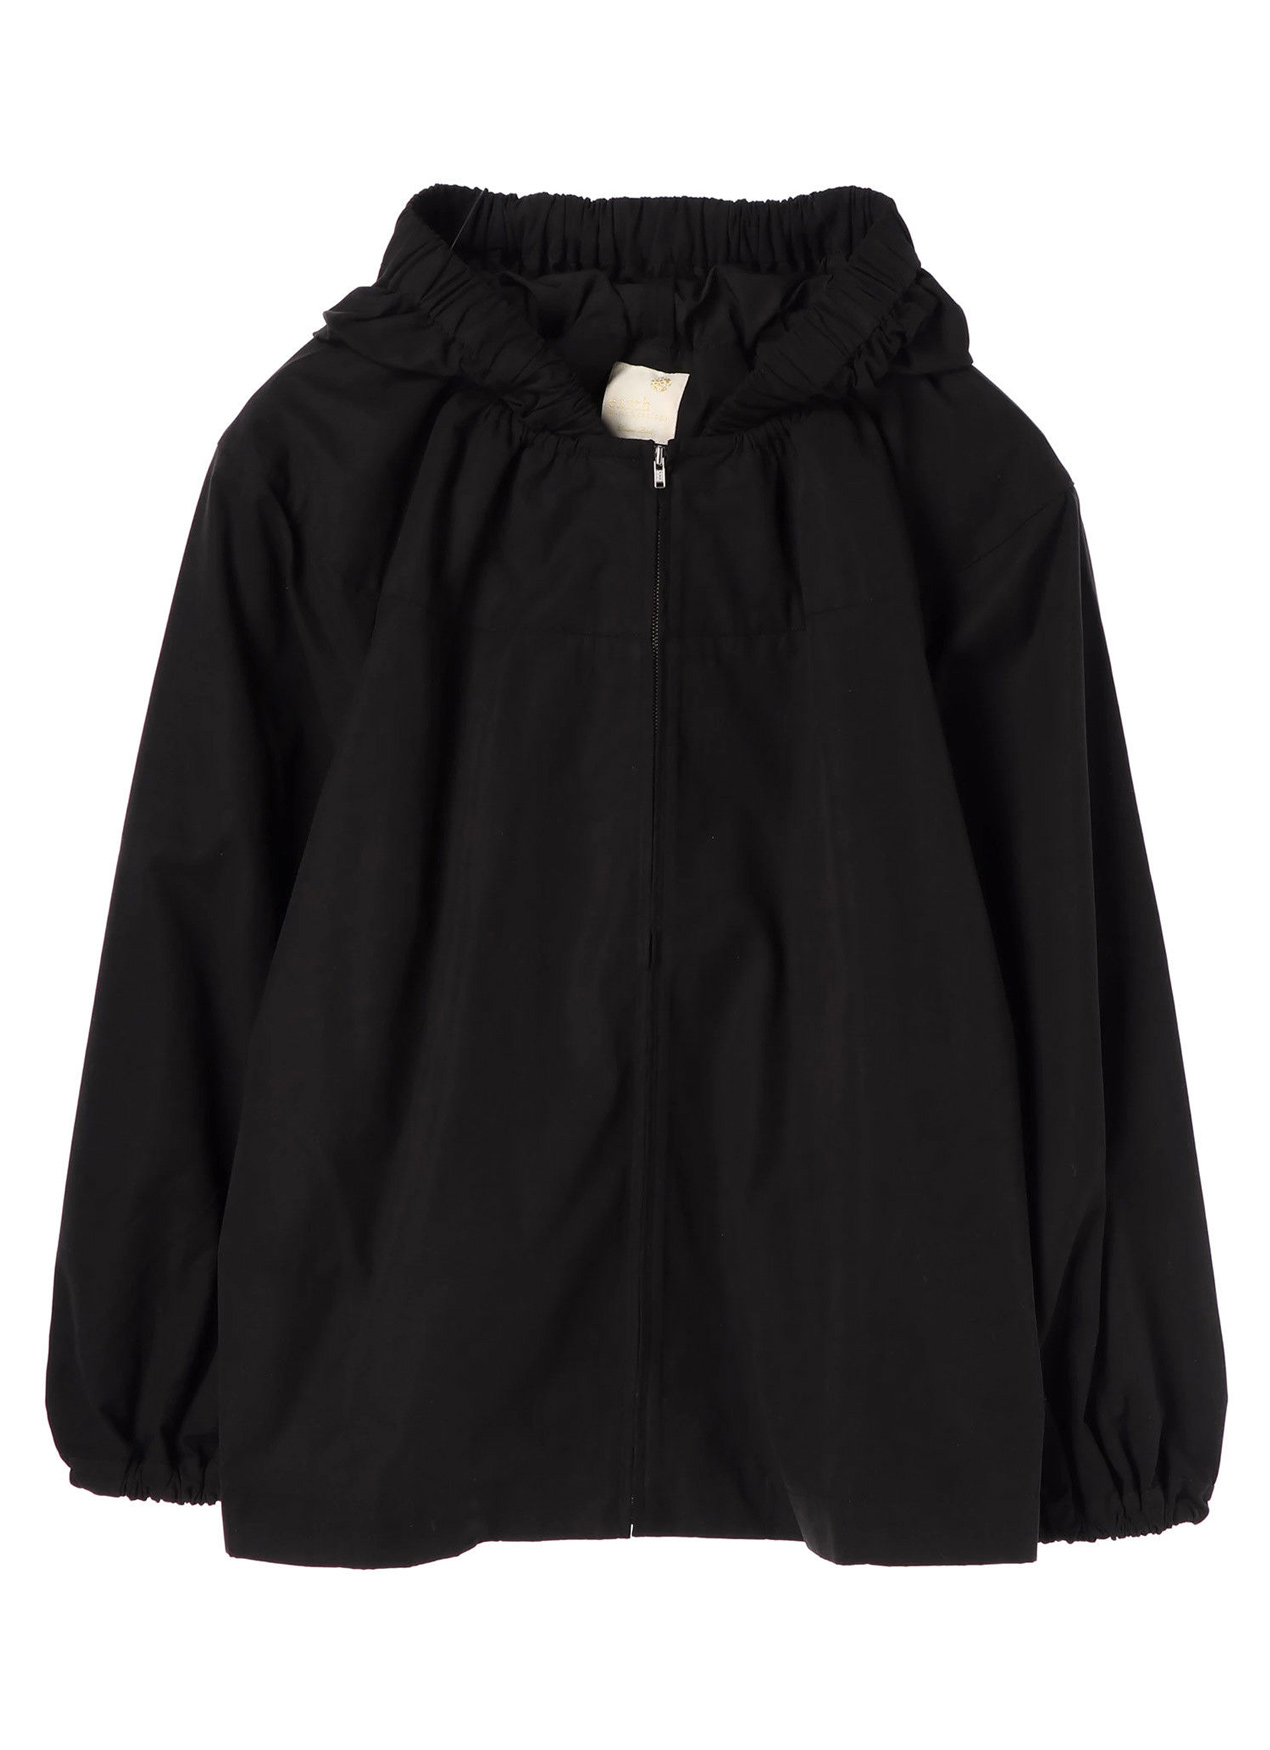 Earth, Music & Ecology Cindy Jacket - Black